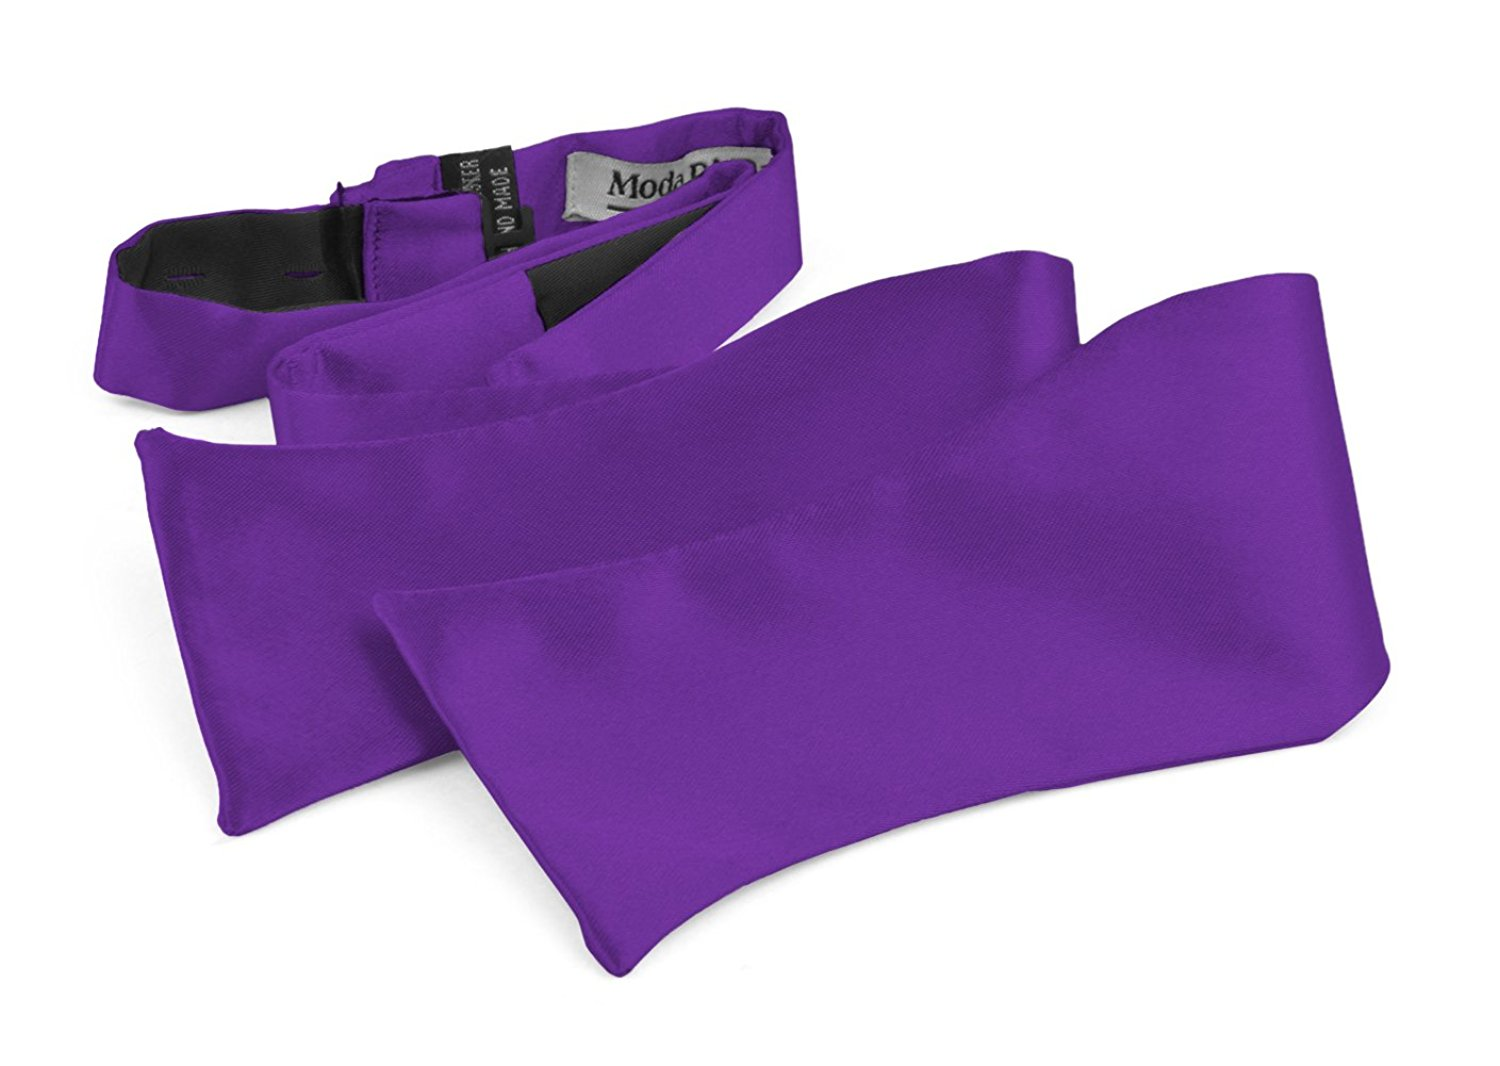 Bow Ties For Men's Adjustable Self Tied Gift Box Moda Di Raza - Violet Purple